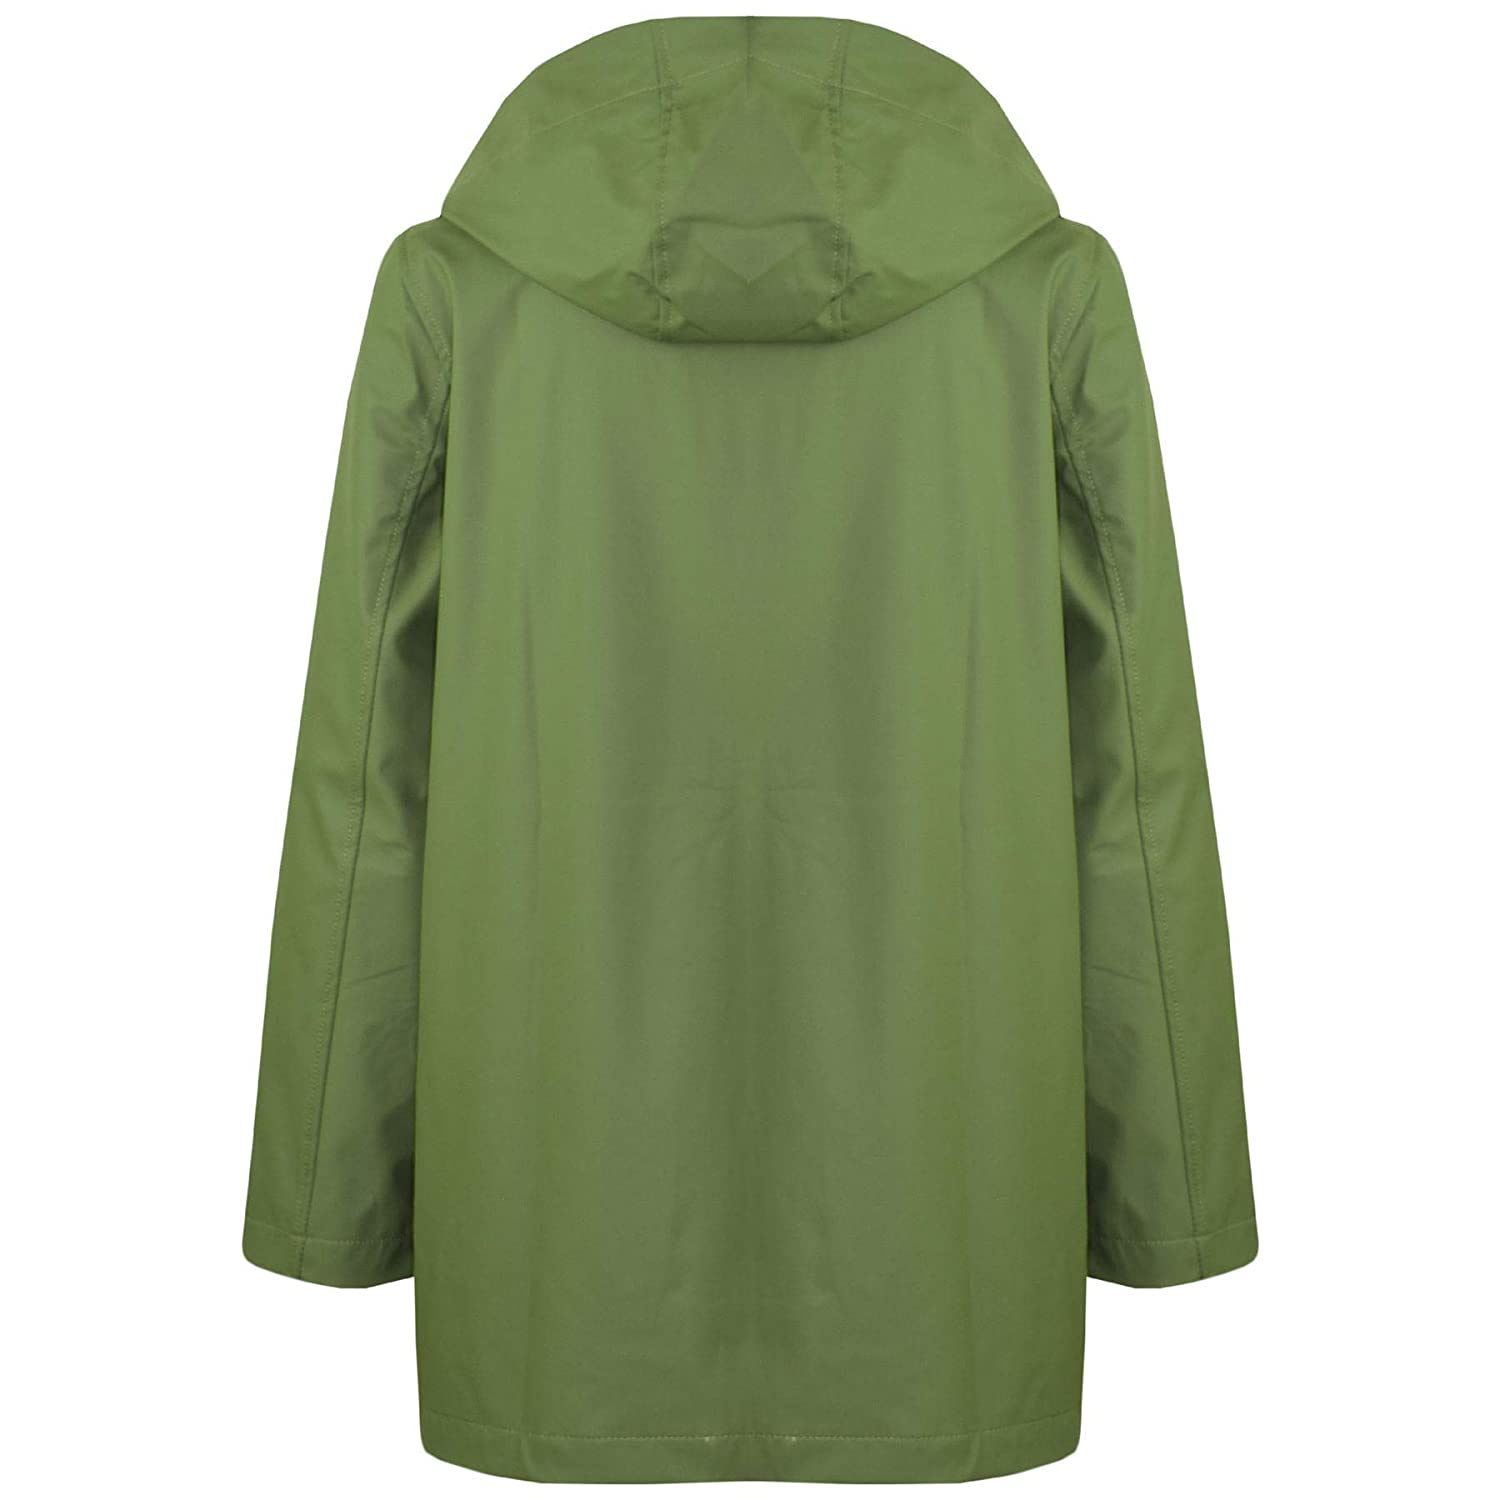 A2Z Kids Girls Boys PU Raincoat Jacket Green Hooded Waterproof Rainmac Cagoule 5-13Y